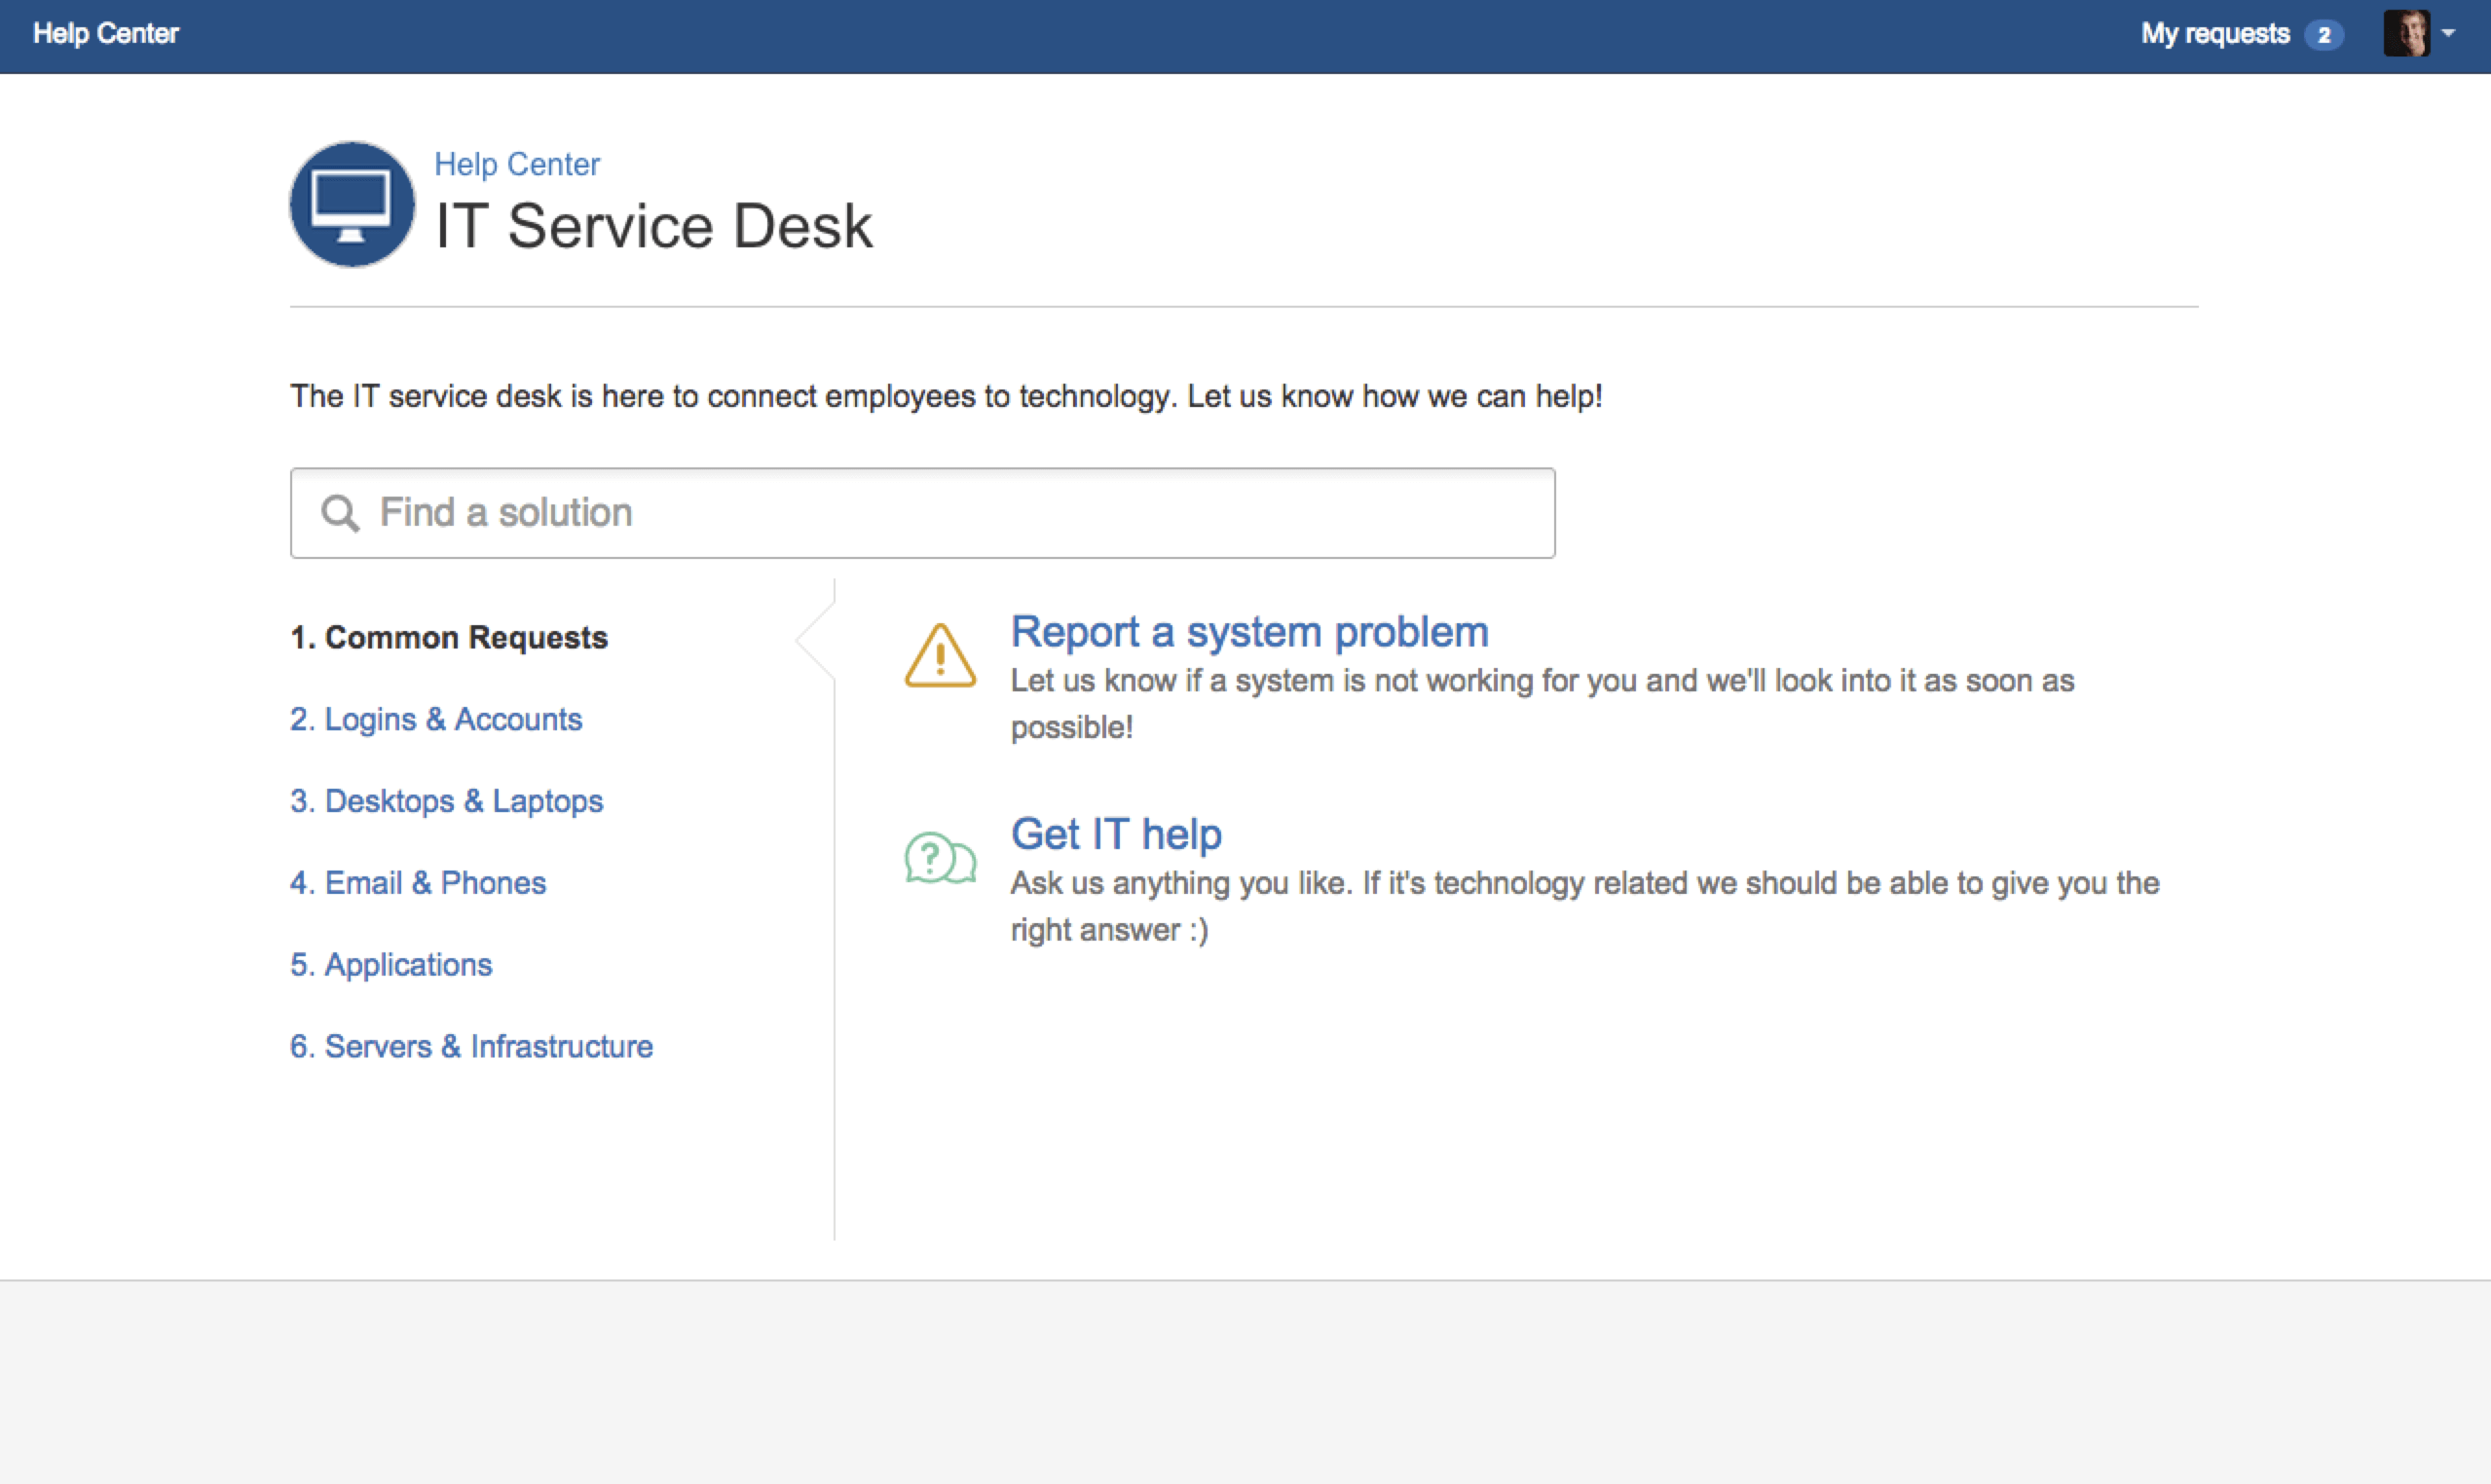 JIRA Service Desk IT Help Desk & Ticketing Software